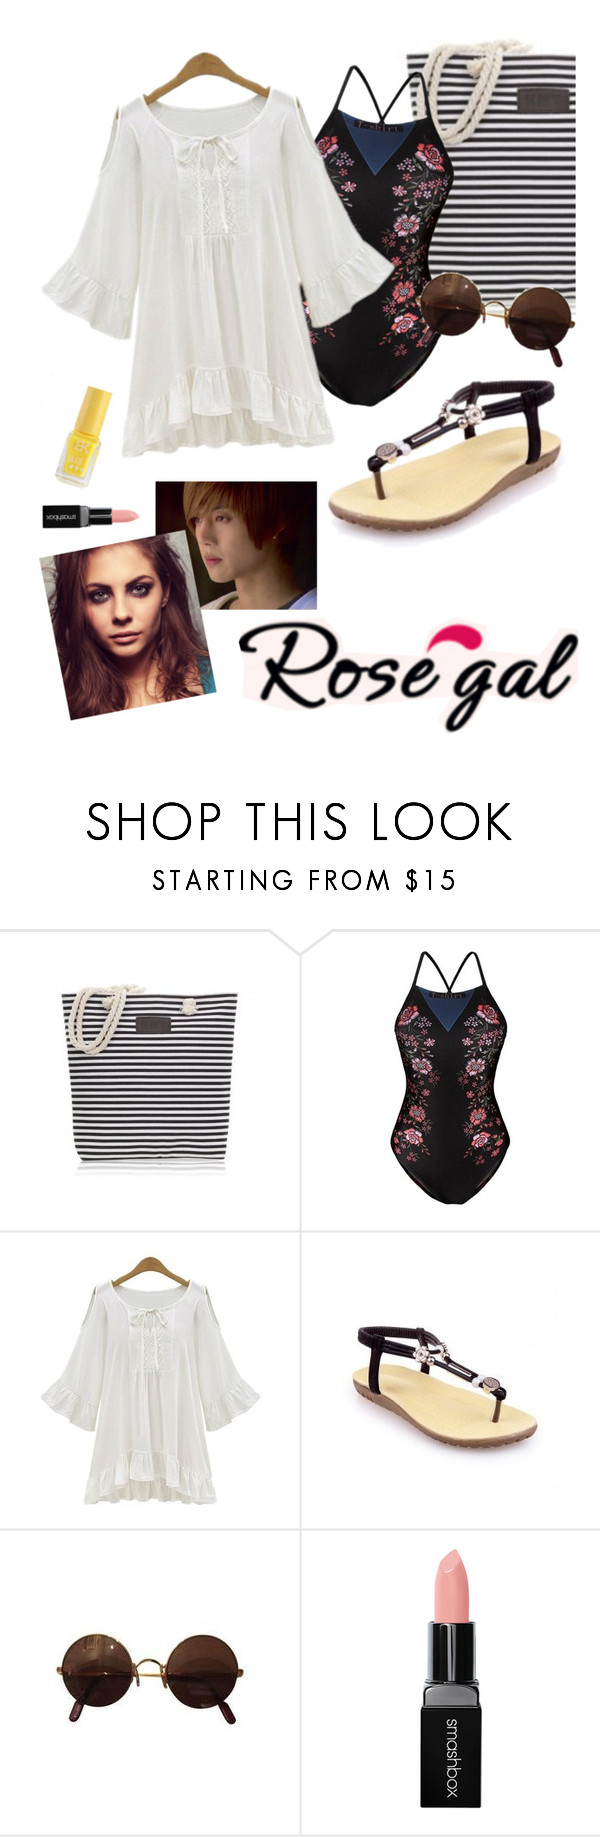 """rosegal contest!"" by ivyfanfic ❤ liked on Polyvore featuring Smashbox"